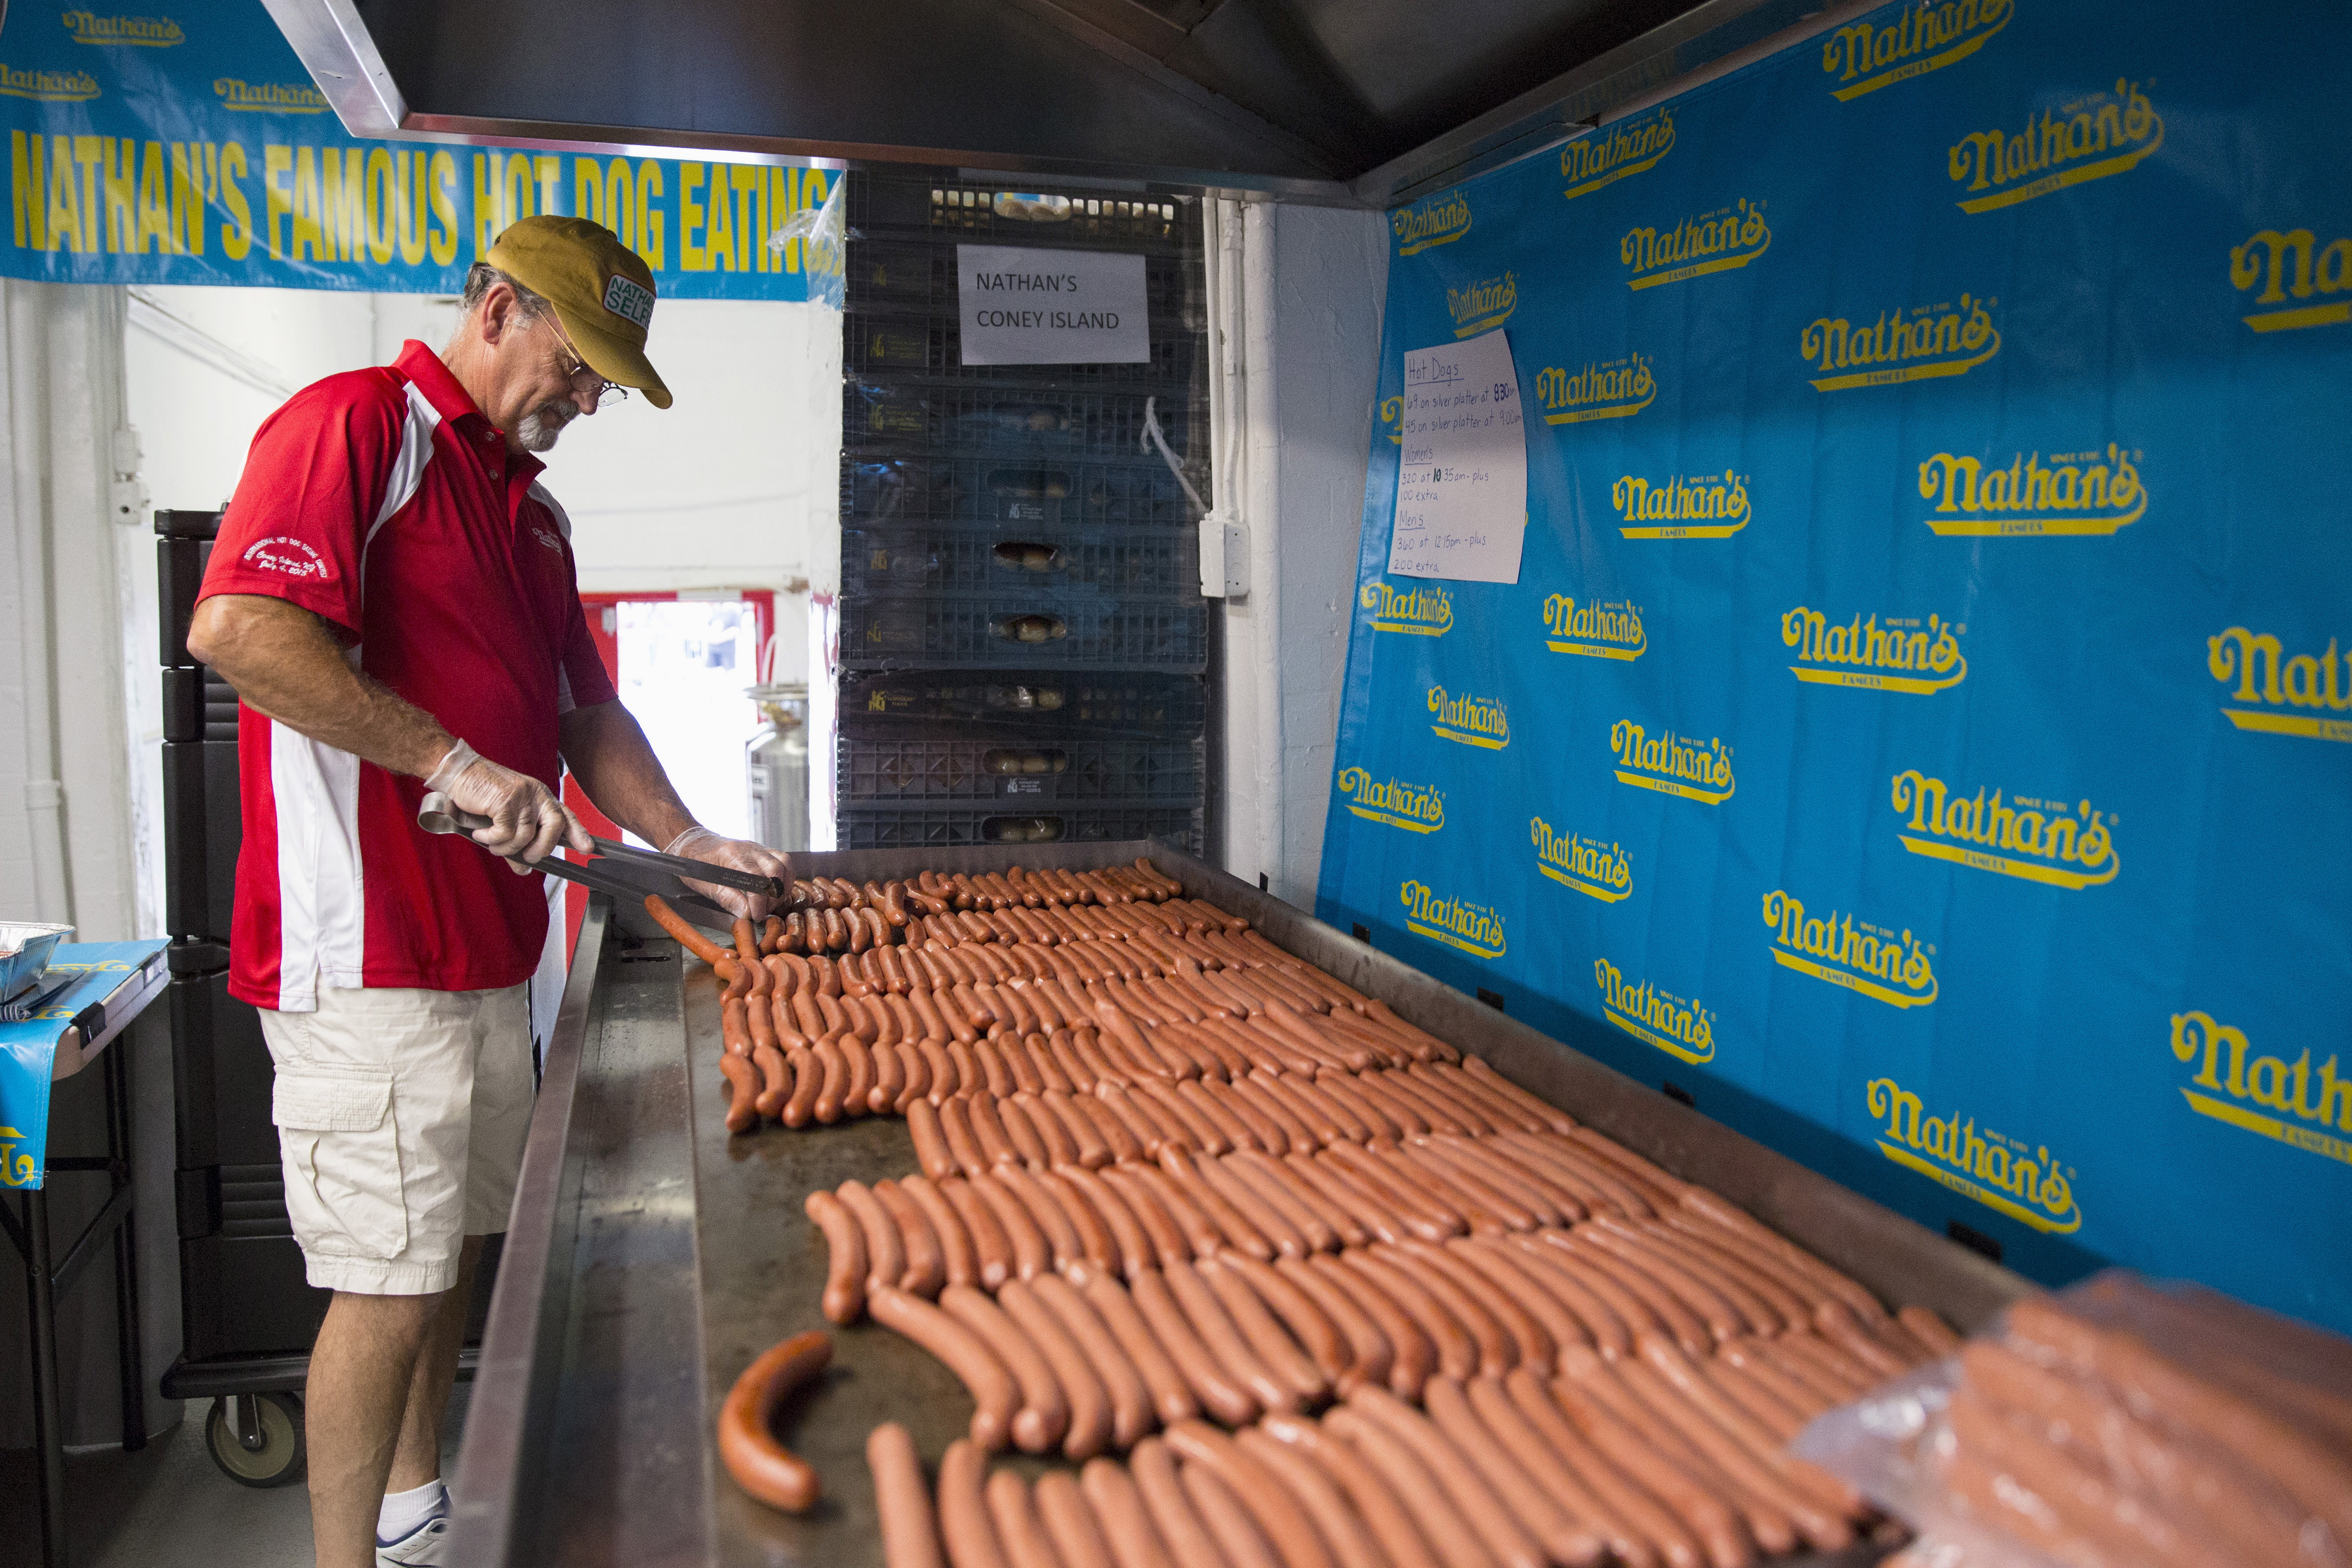 Kevin McDonald of Jackson, New Jersey prepares sausages for Nathan's Famous Hot Dog Eating Contest in Brooklyn, New York July 4, 2015. McDonald has been cooking the sausages for the contest since 1997 and averages 2,600 sausages cooked per year. REUTERS/Andrew Kelly - RTX1IZYL